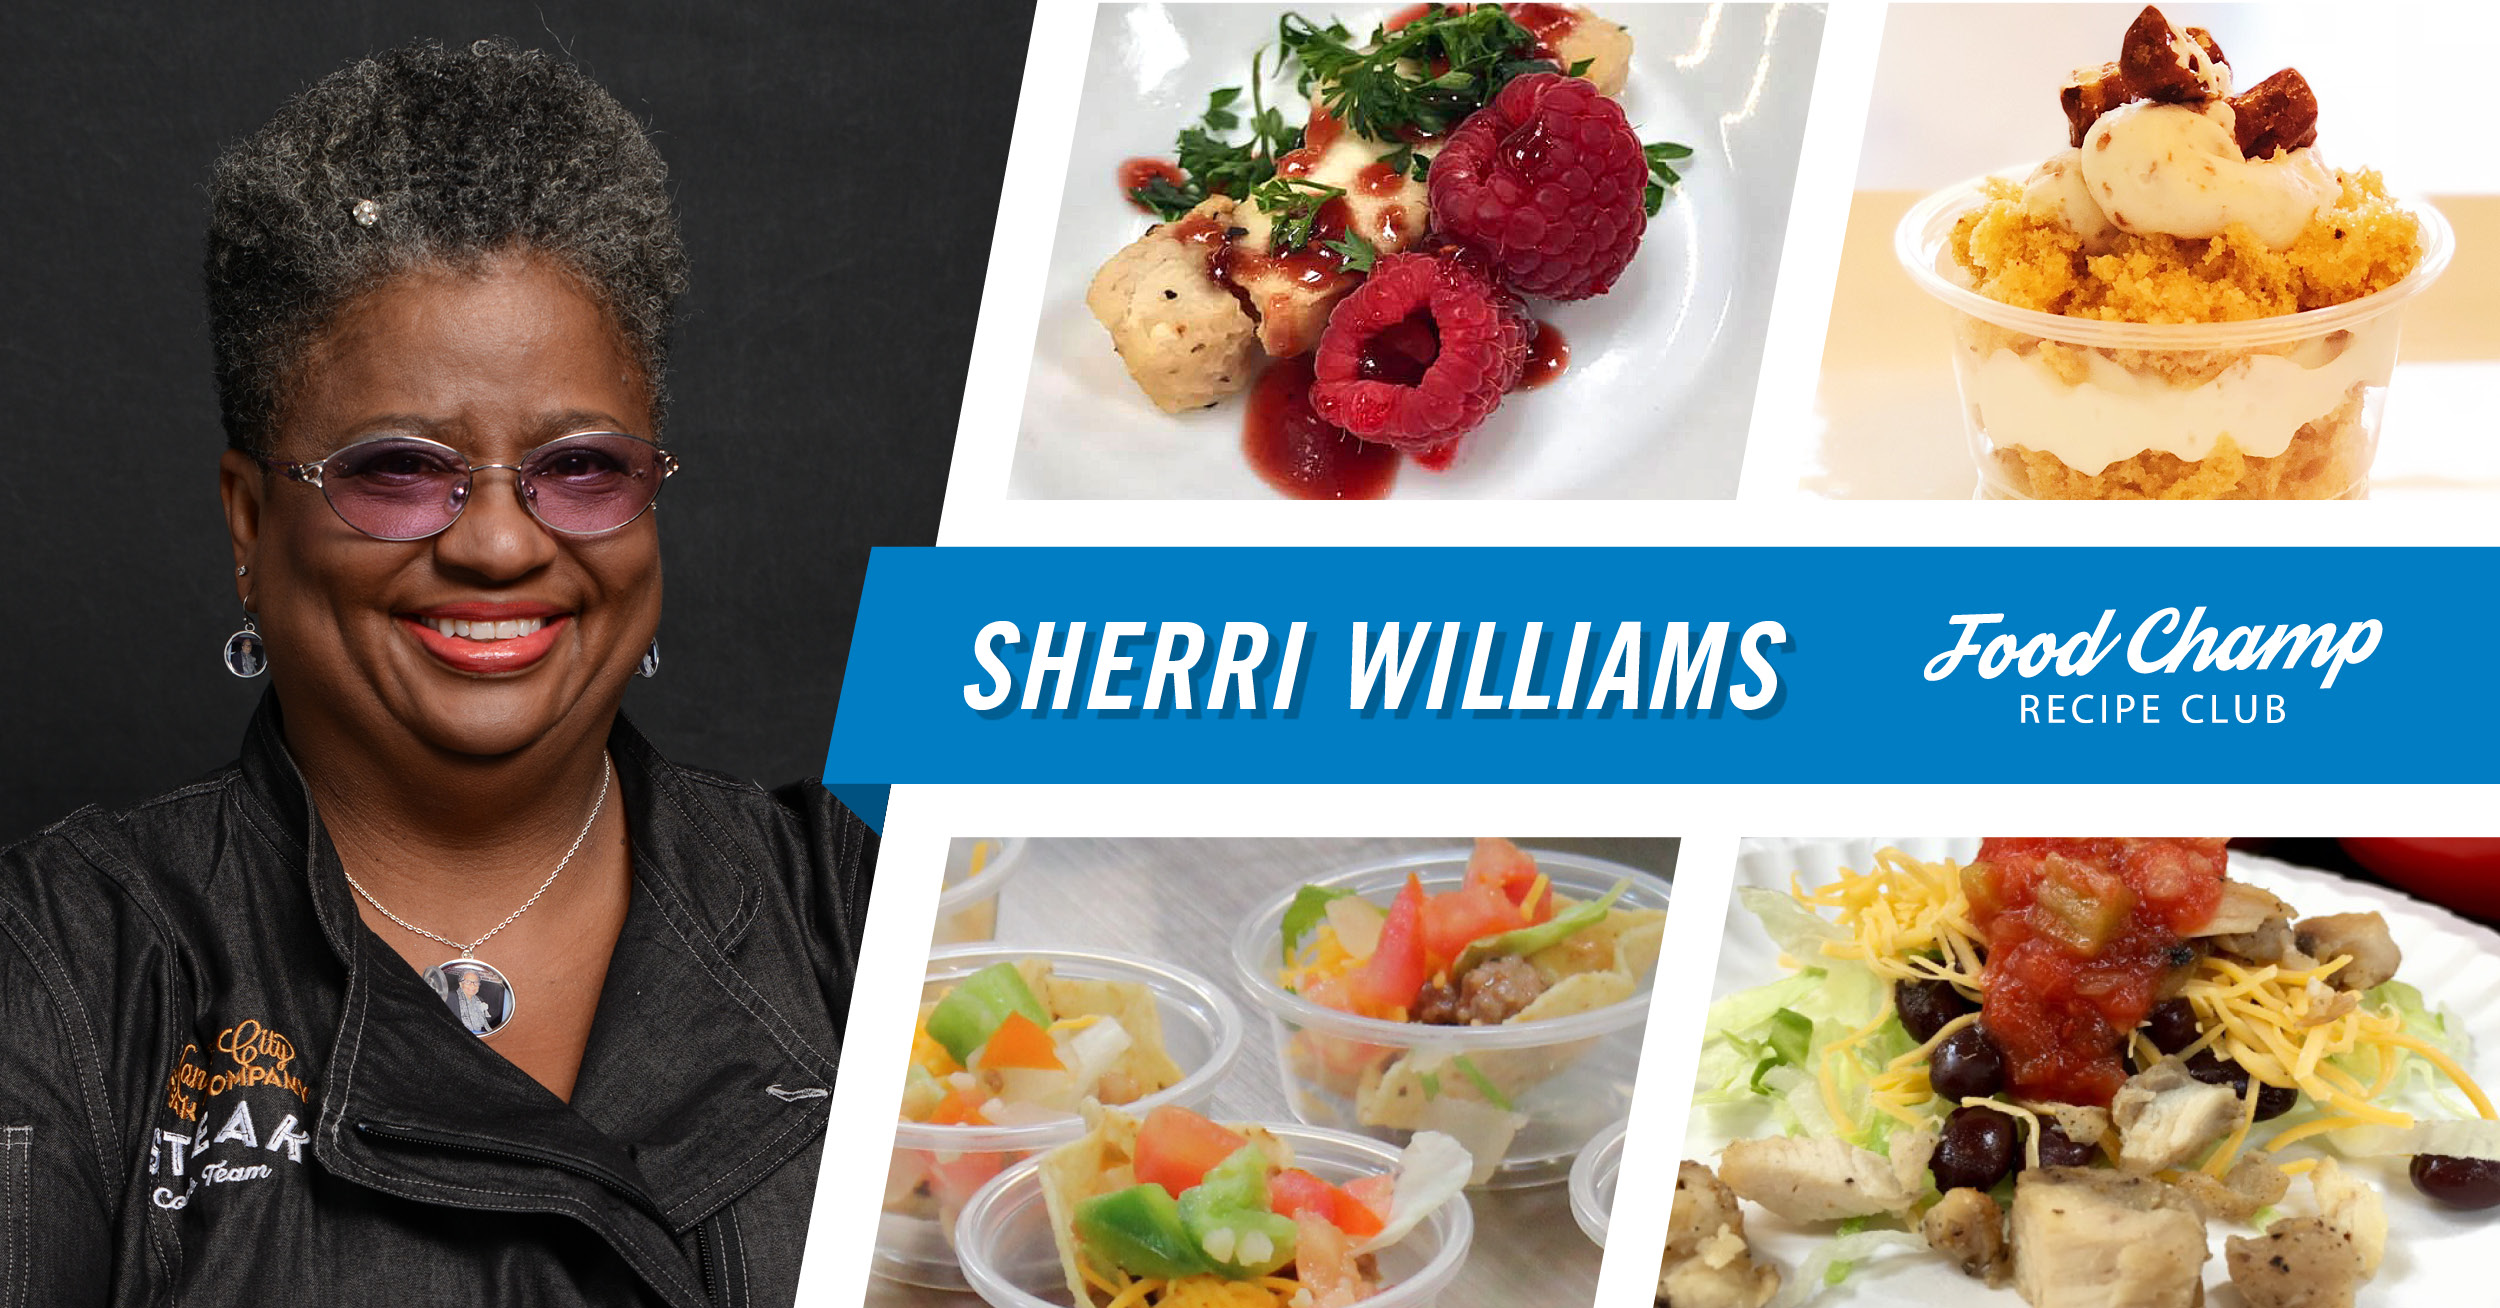 Food Champ Recipe Club - Sherri Williams -- 2018-walmart-food-champ-sherri-wiliams-fb-ad-v1a.jpg